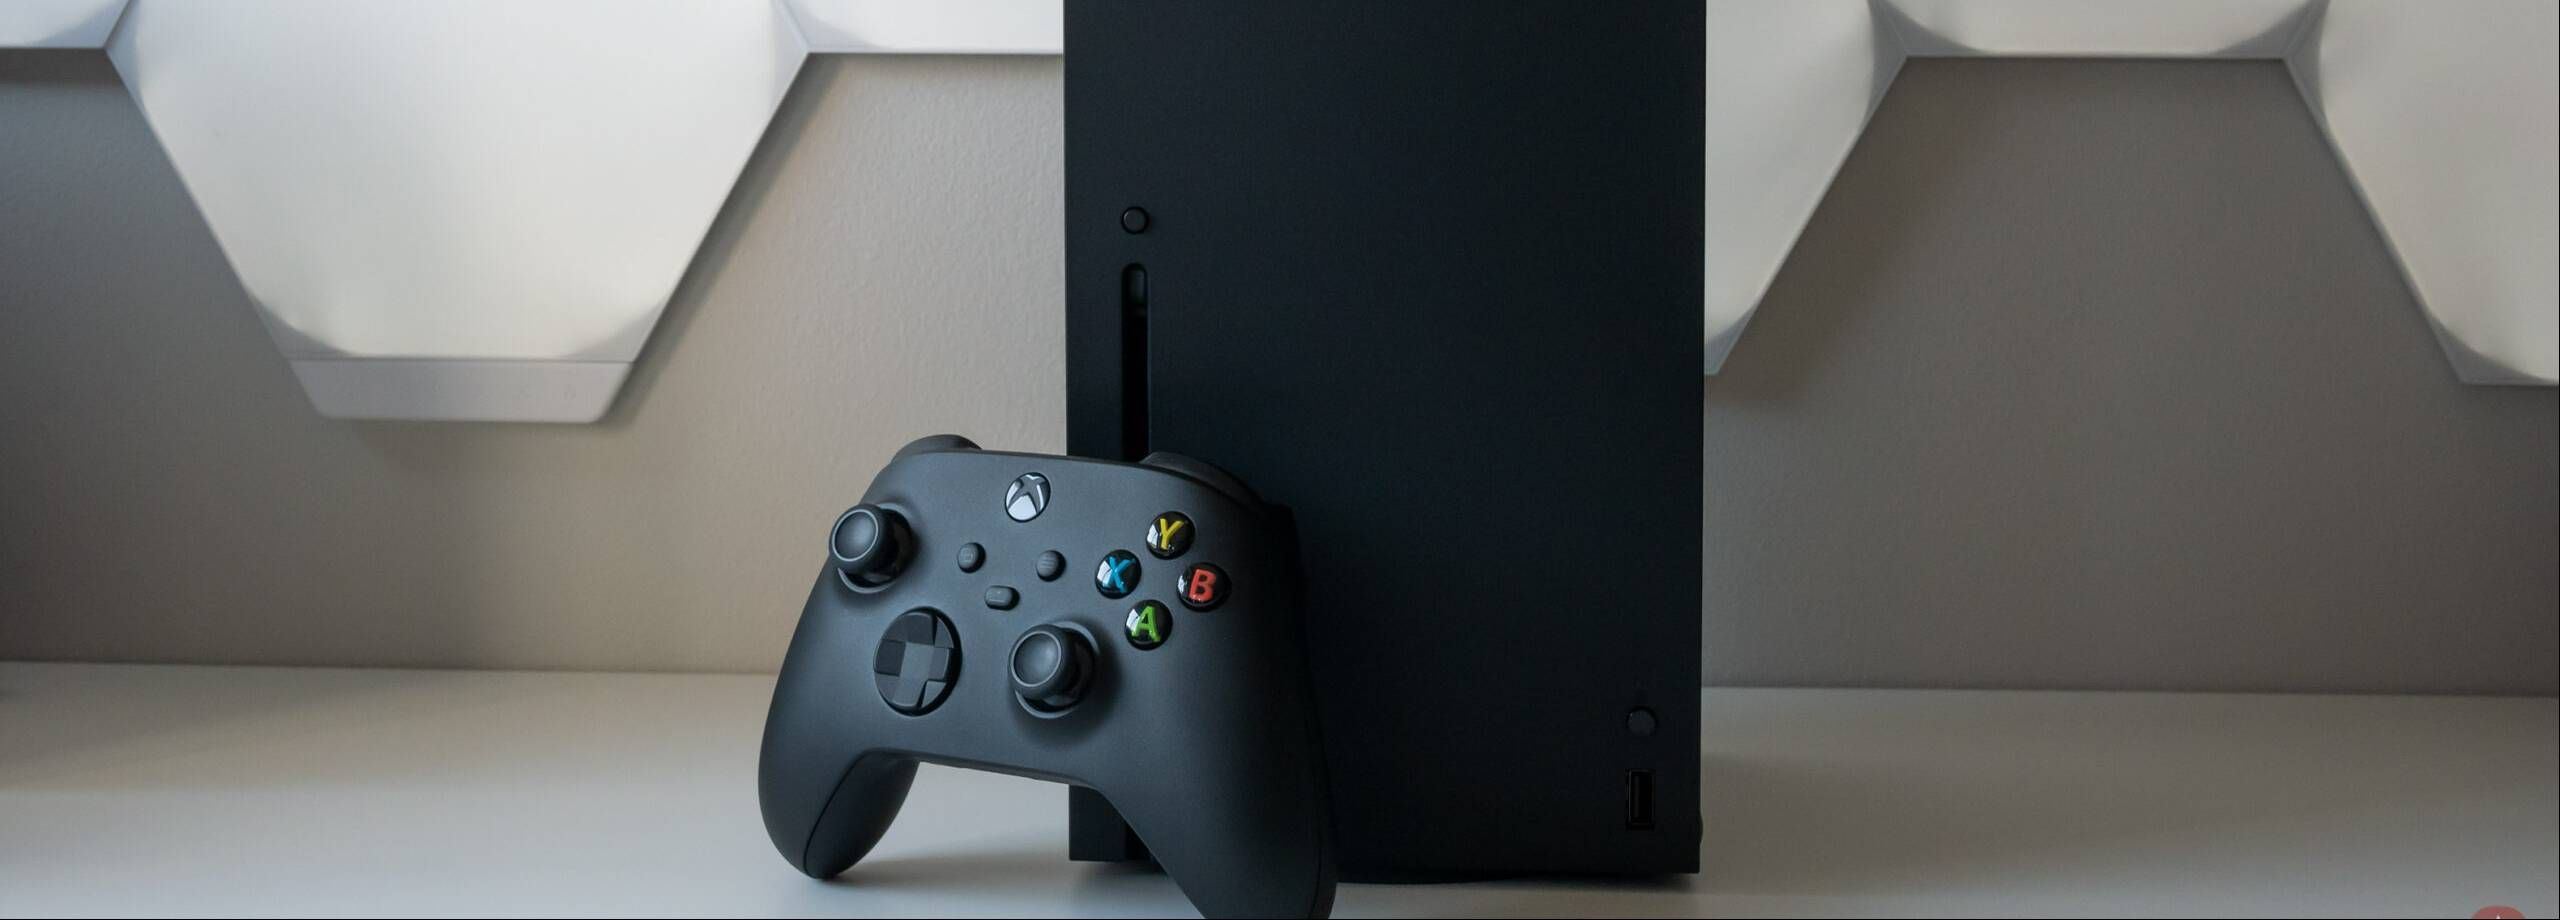 An Early Look At Microsoft S The Xbox Series X Xbox Heavy Games Gaming Pc